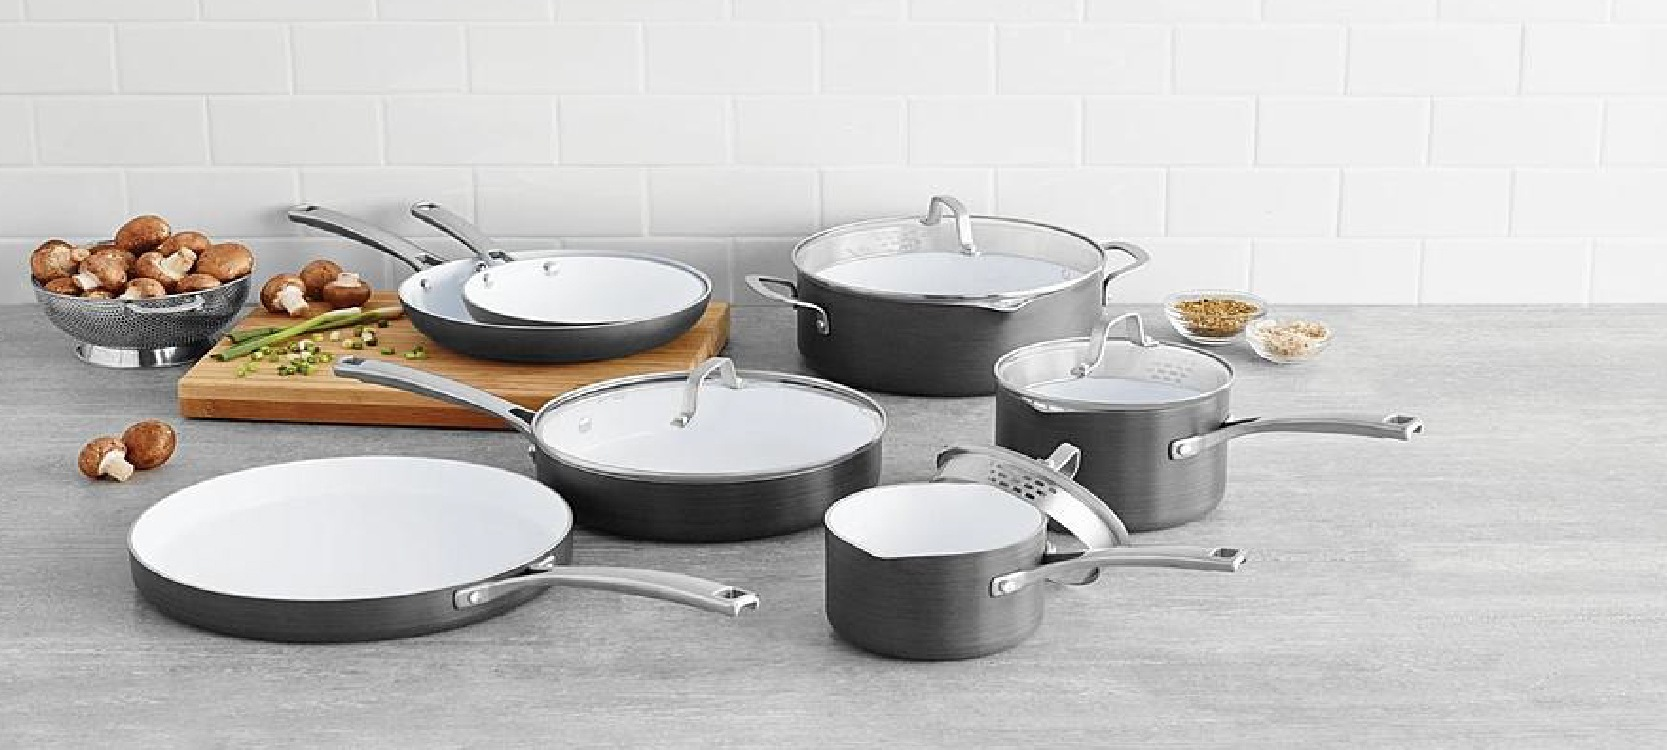 the luxury Calphalon ceramic pots and pans on the grey kitchen